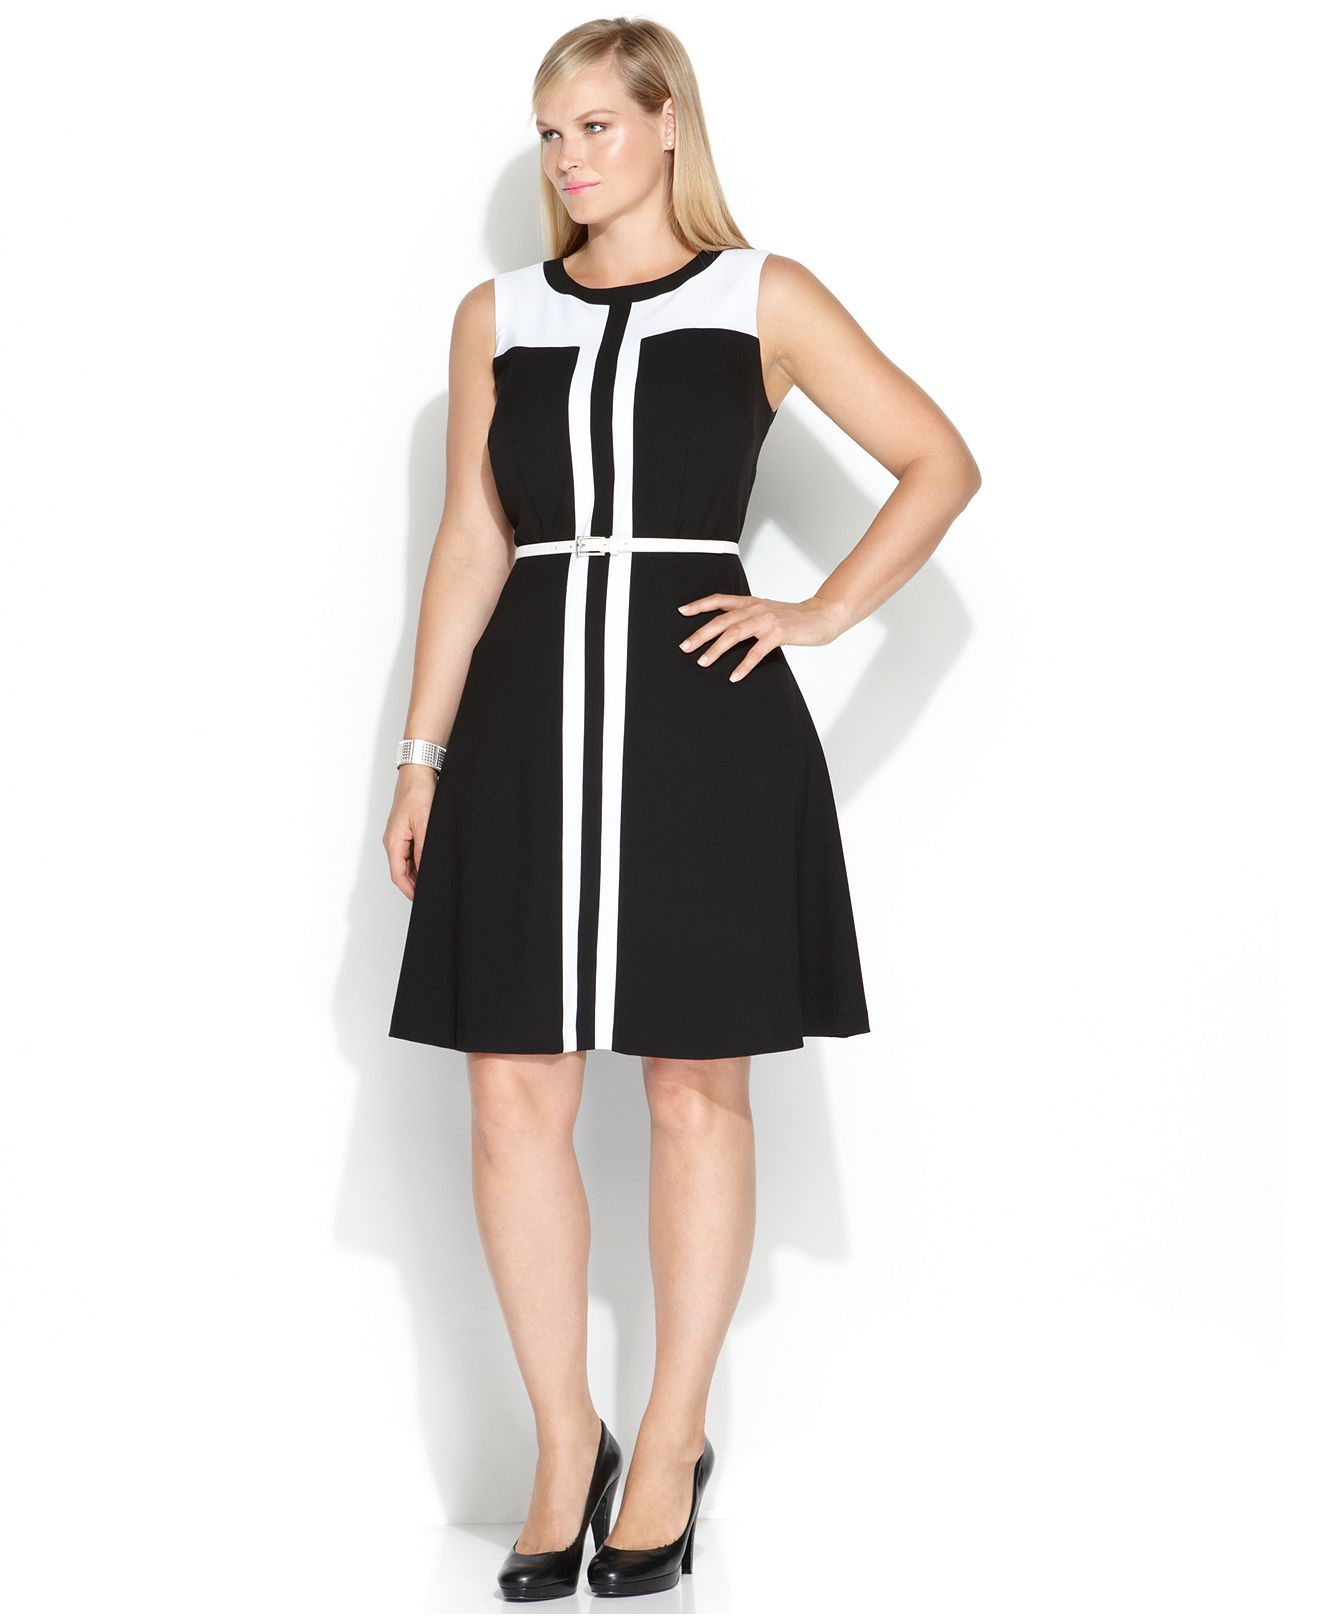 Calvin Klein Plus Size Sleeveless Colorblocked Belted A-Line Dress - Dresses  - Plus Sizes - Macy's